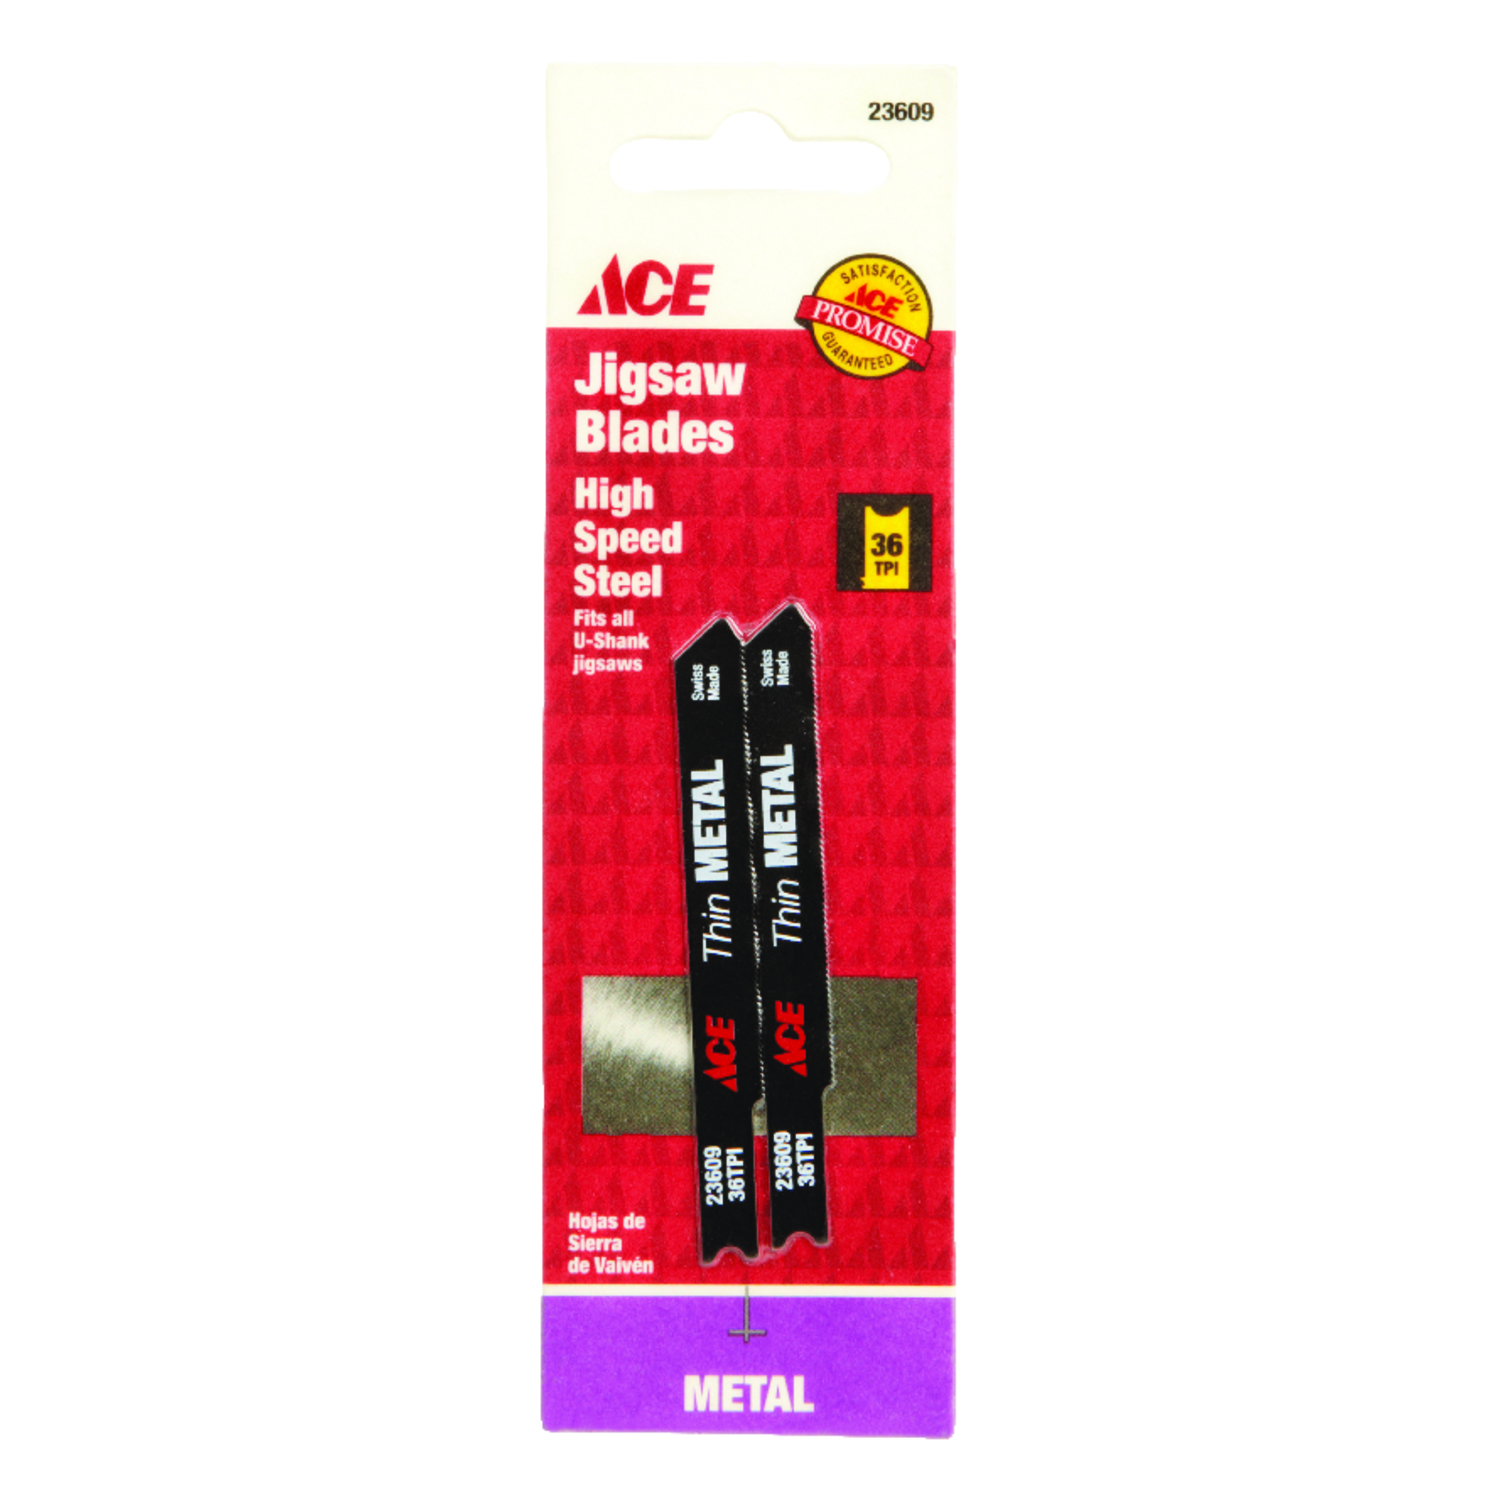 Ace  Carbon Steel  Jig Saw Blade  36 TPI 2 pk Universal  2-3/4 in.